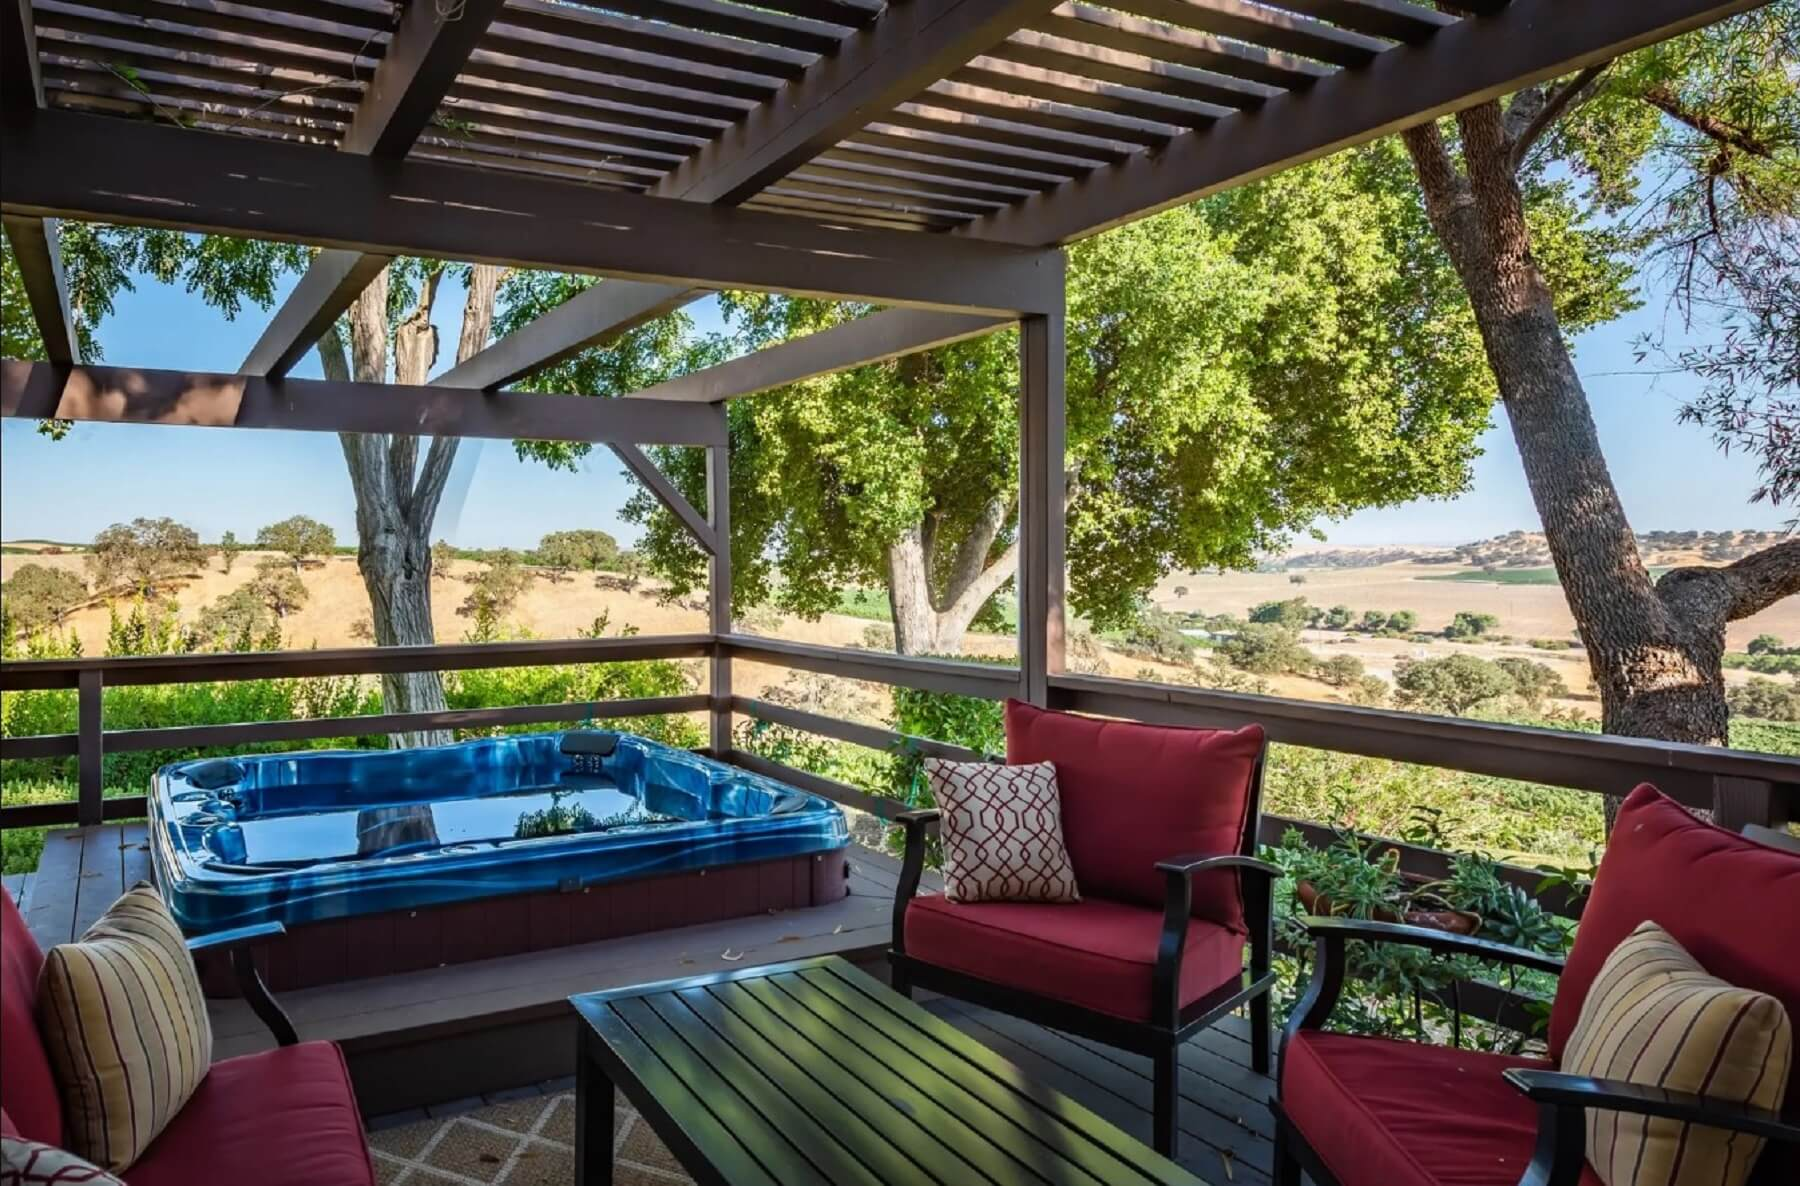 Casa de Vina - Porch with Hot Tub and Seating Area